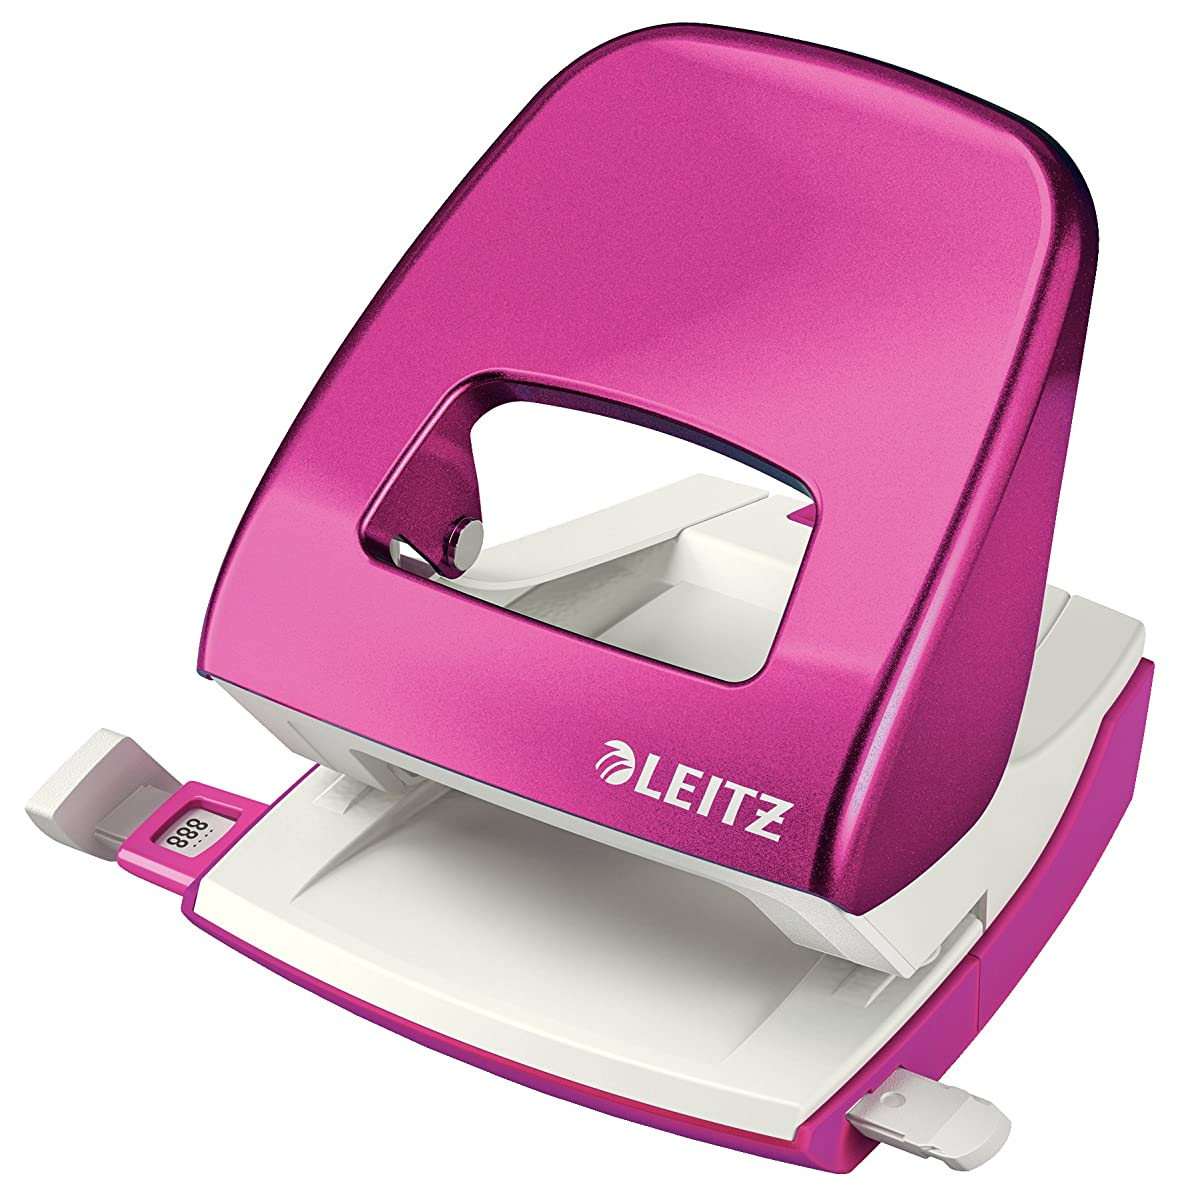 Leitz Hole Punch, Guide Bar with Format Markings, Metal, Wow Range 30 Sheets